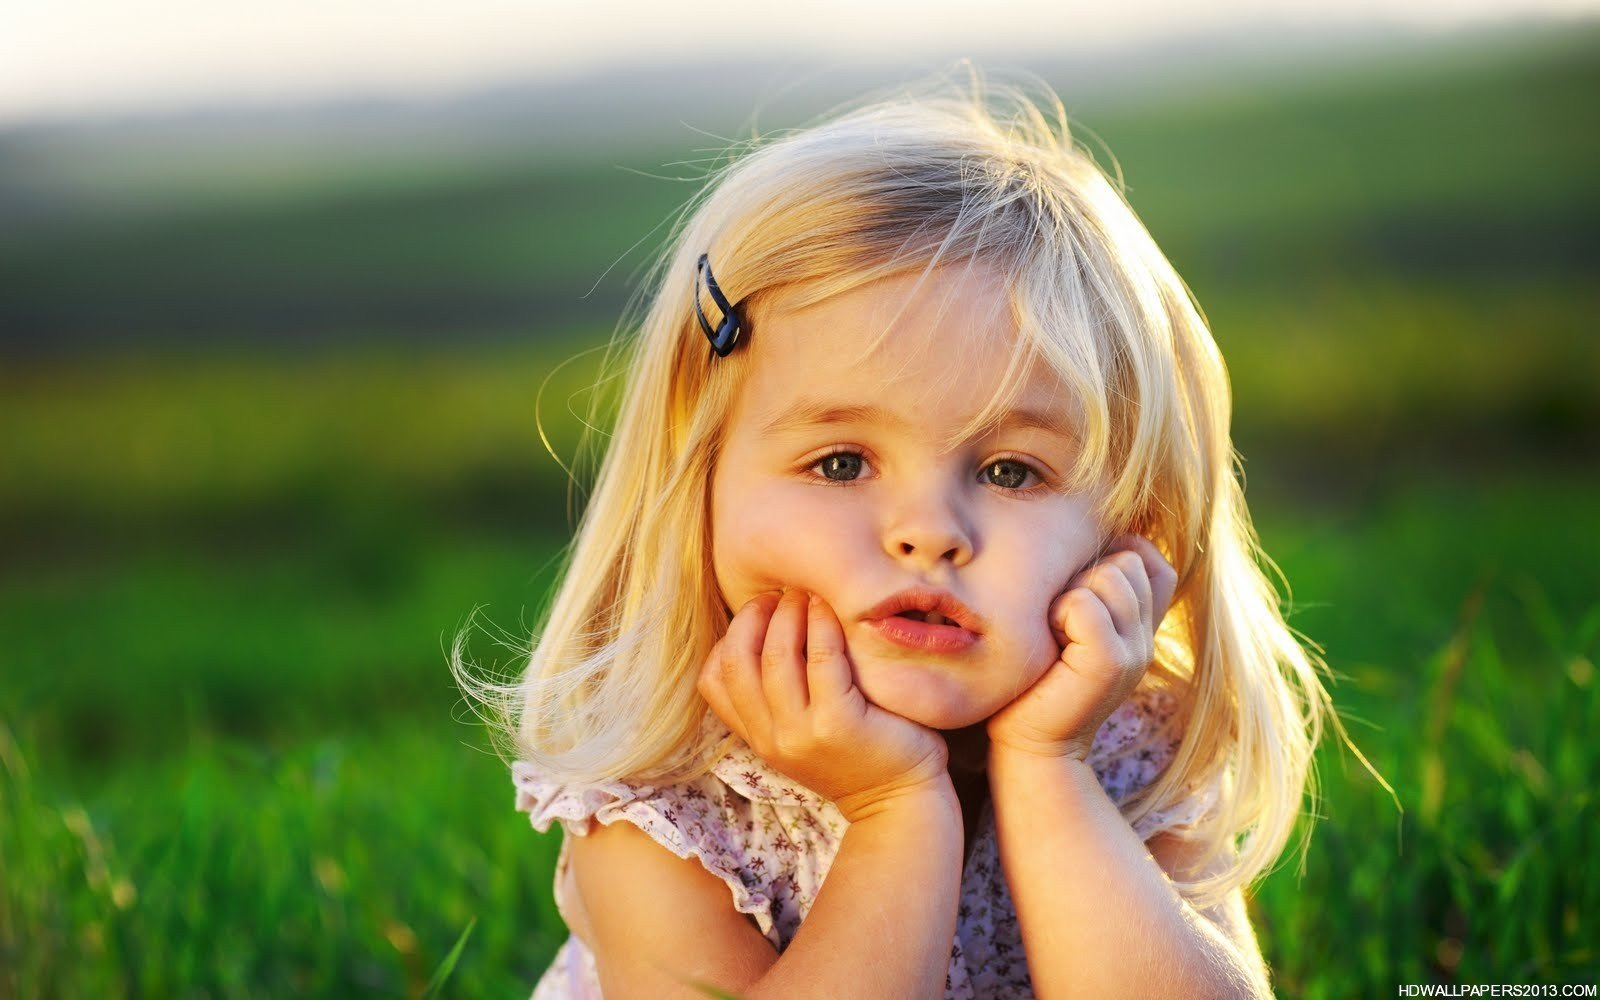 Cute Kids High Definition Wallpapers High Definition Backgrounds 1600x1000